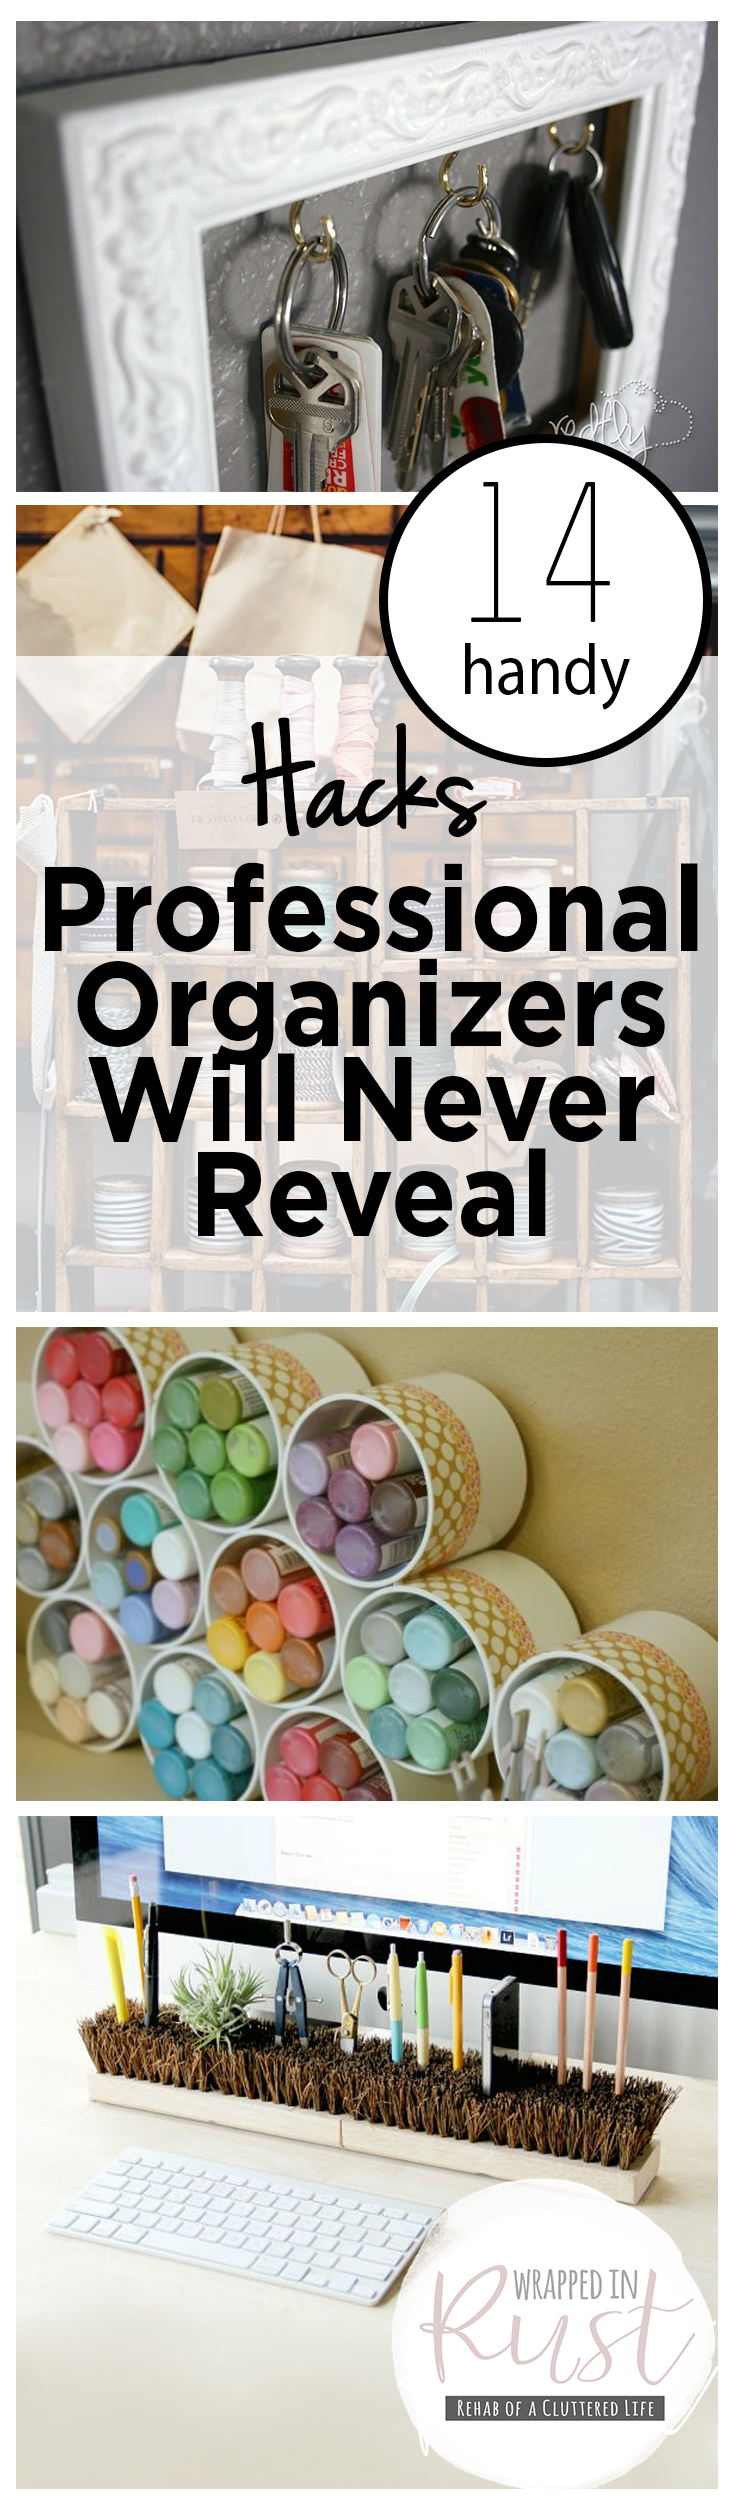 14 Handy Hacks Professional Organizers Will Never Reveal Wrapped In Rust